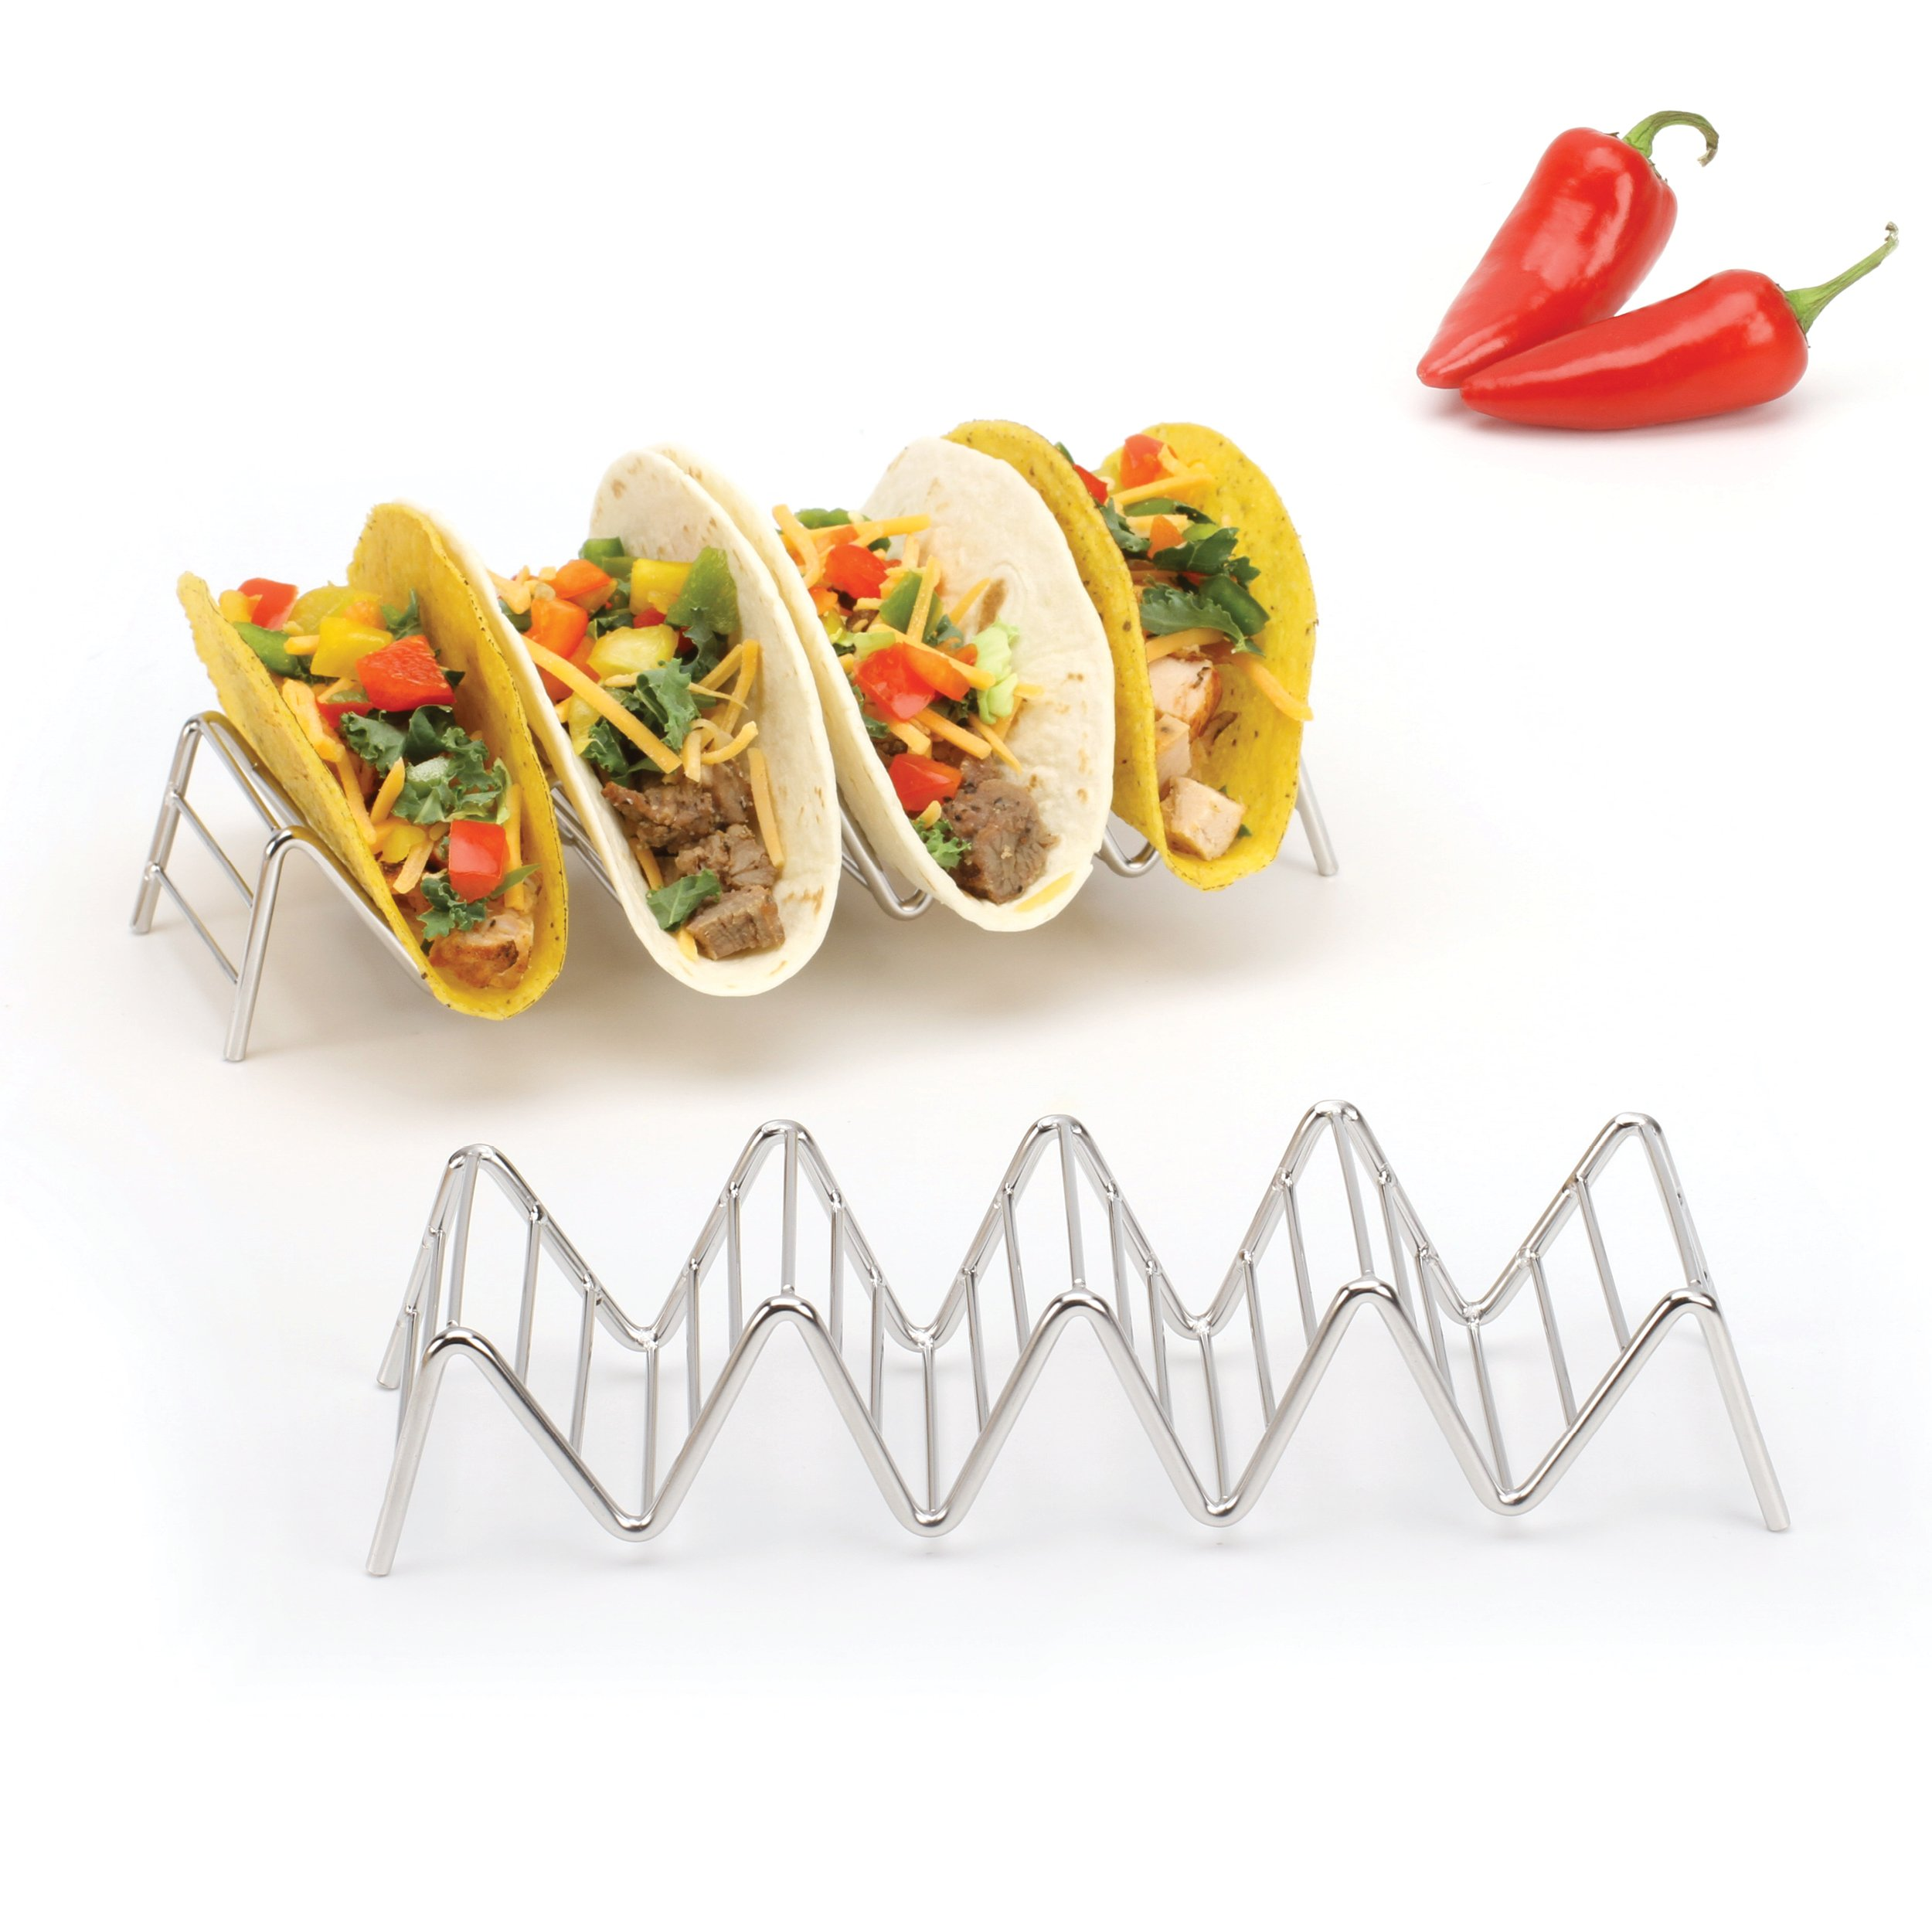 Taco Shell Holder, Stainless Steel Taco Rack Hard Soft Taco's, 2 Pack, 5 Styles Available 2 Lb. Depot (Holds 4 or 5 Tacos)